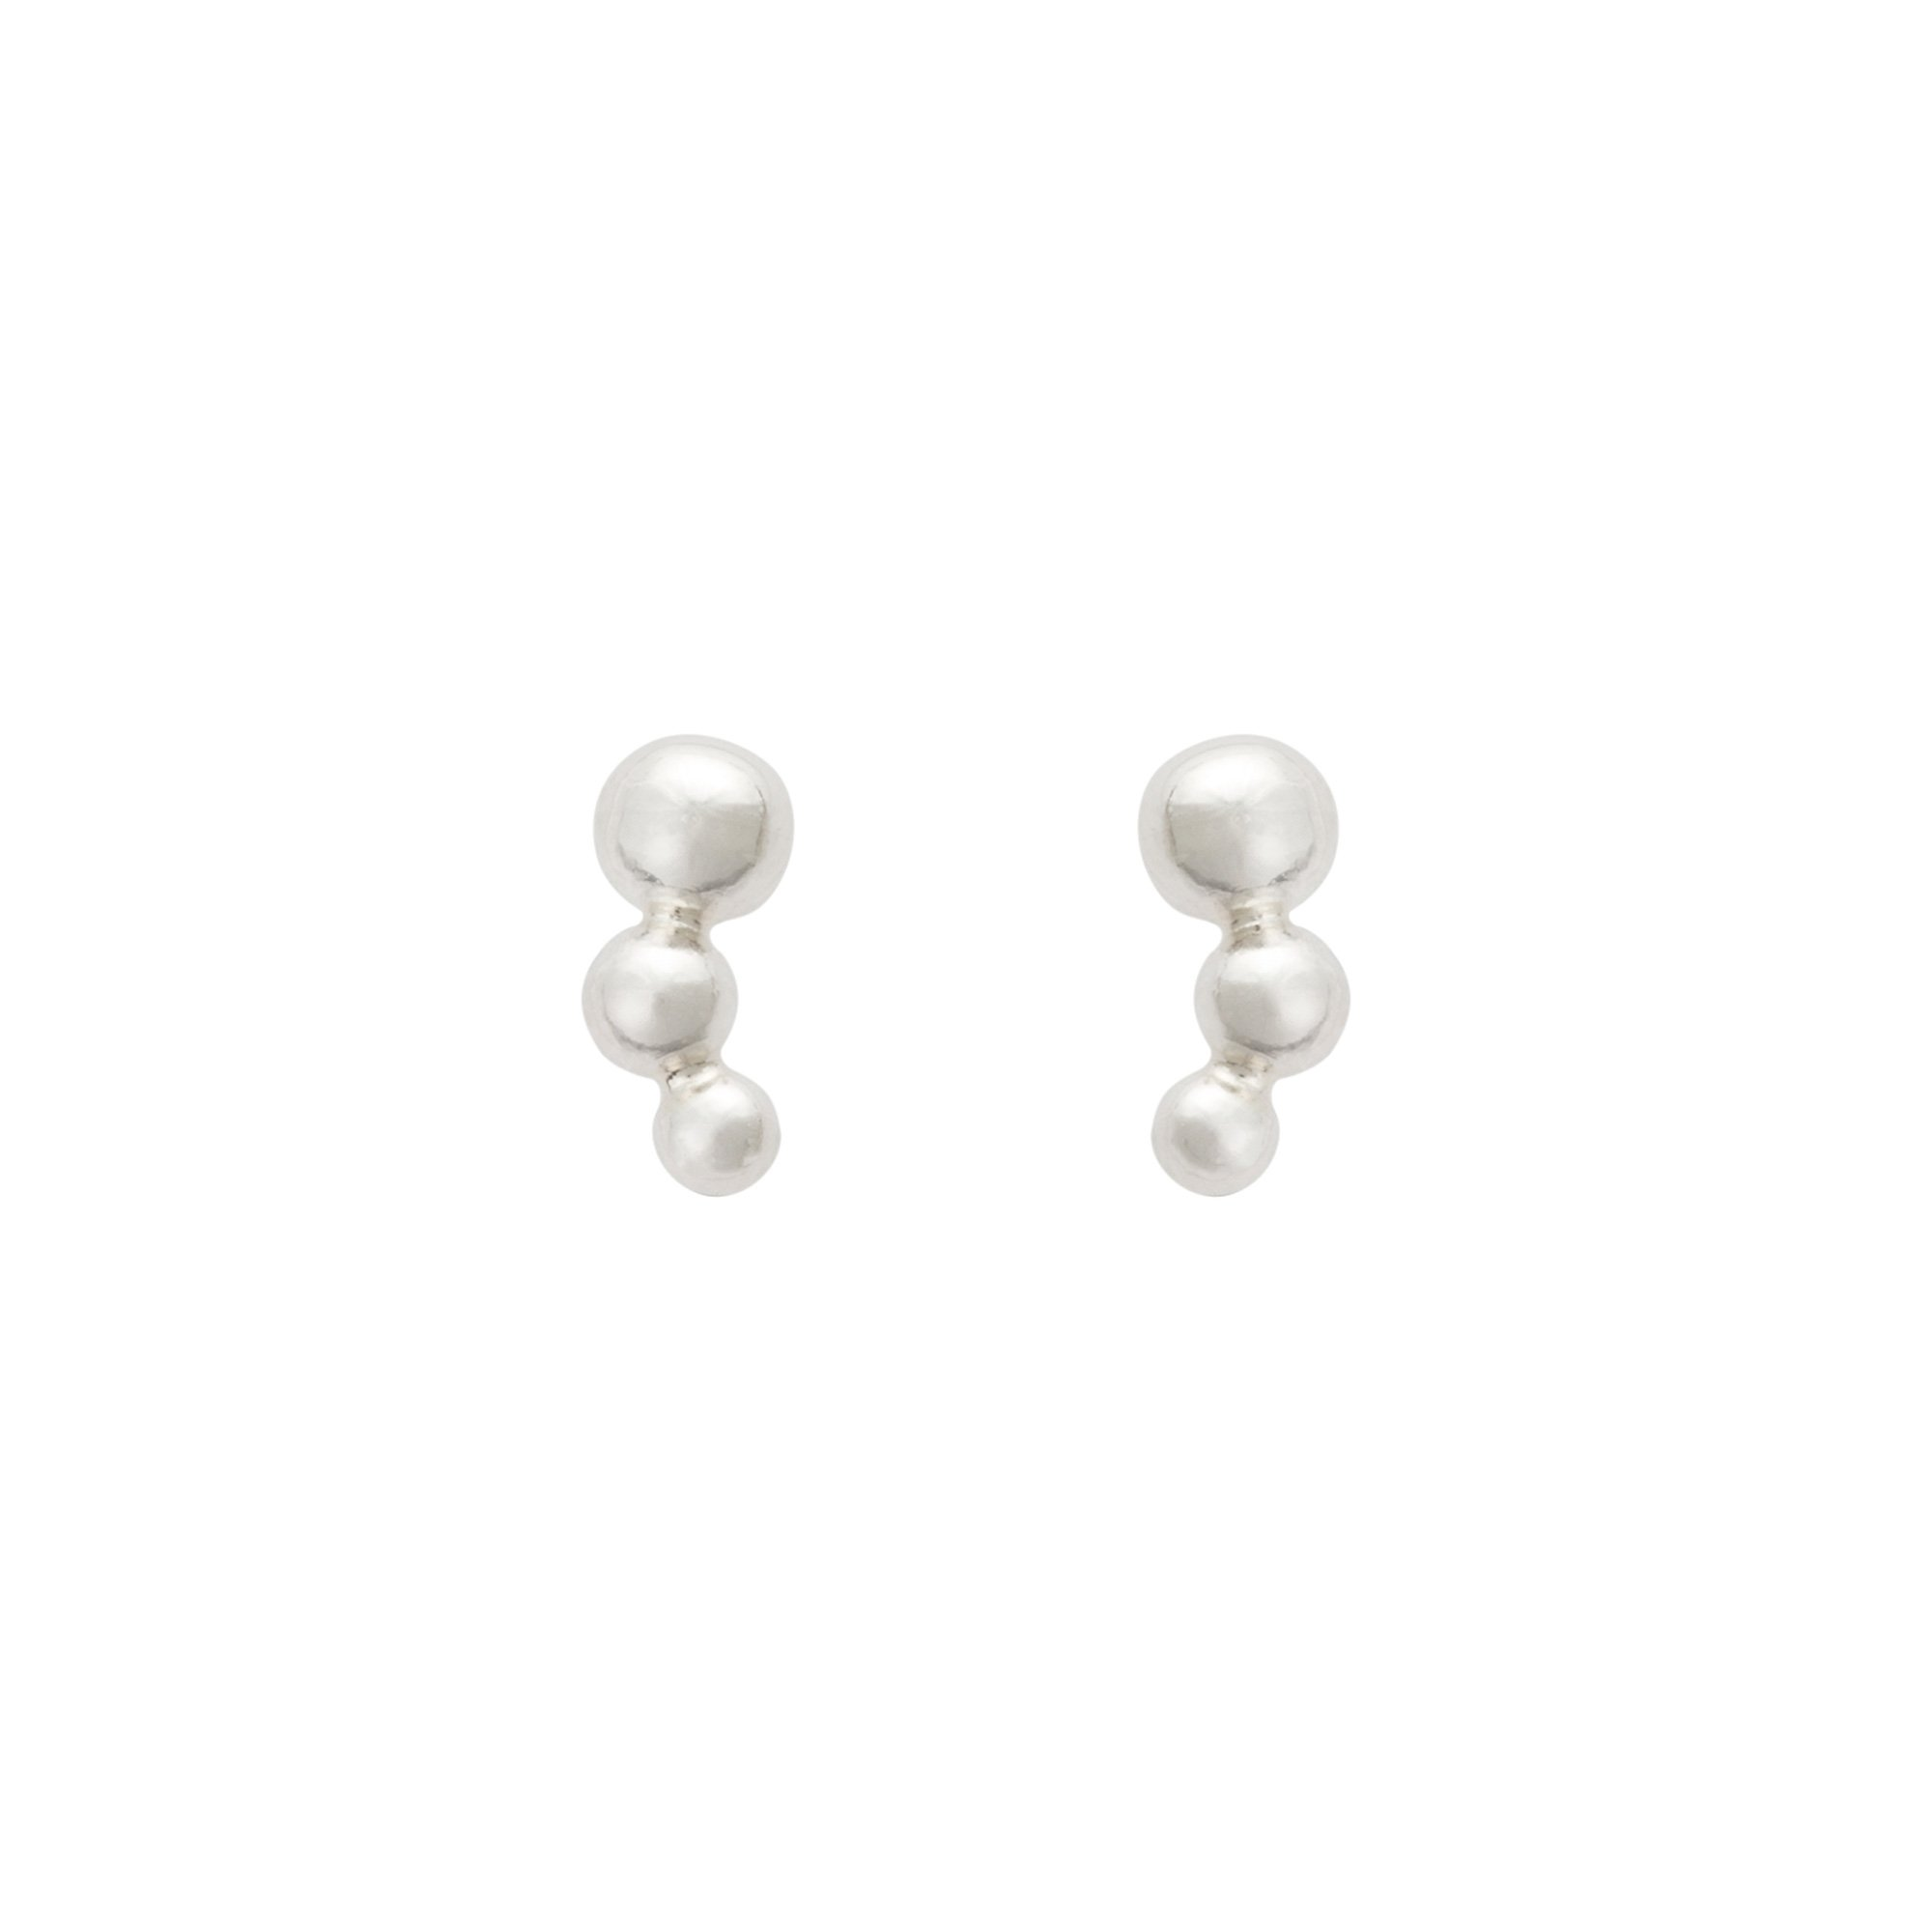 ca london hires earring stud links of sterling thames silver en essentials earrings